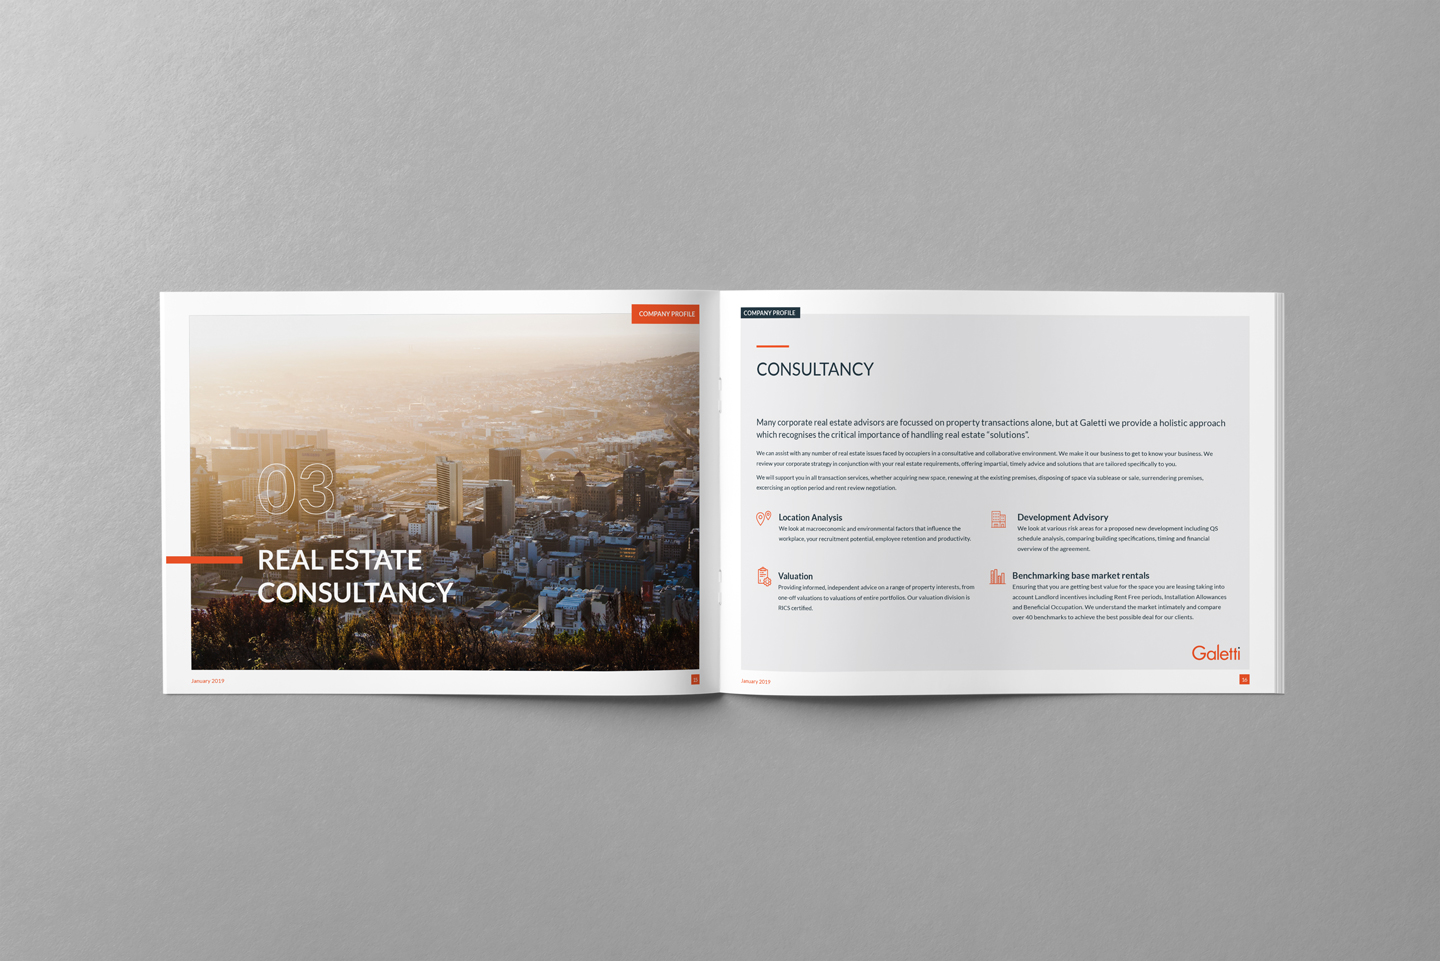 Galetti CRE corporate identity design 4